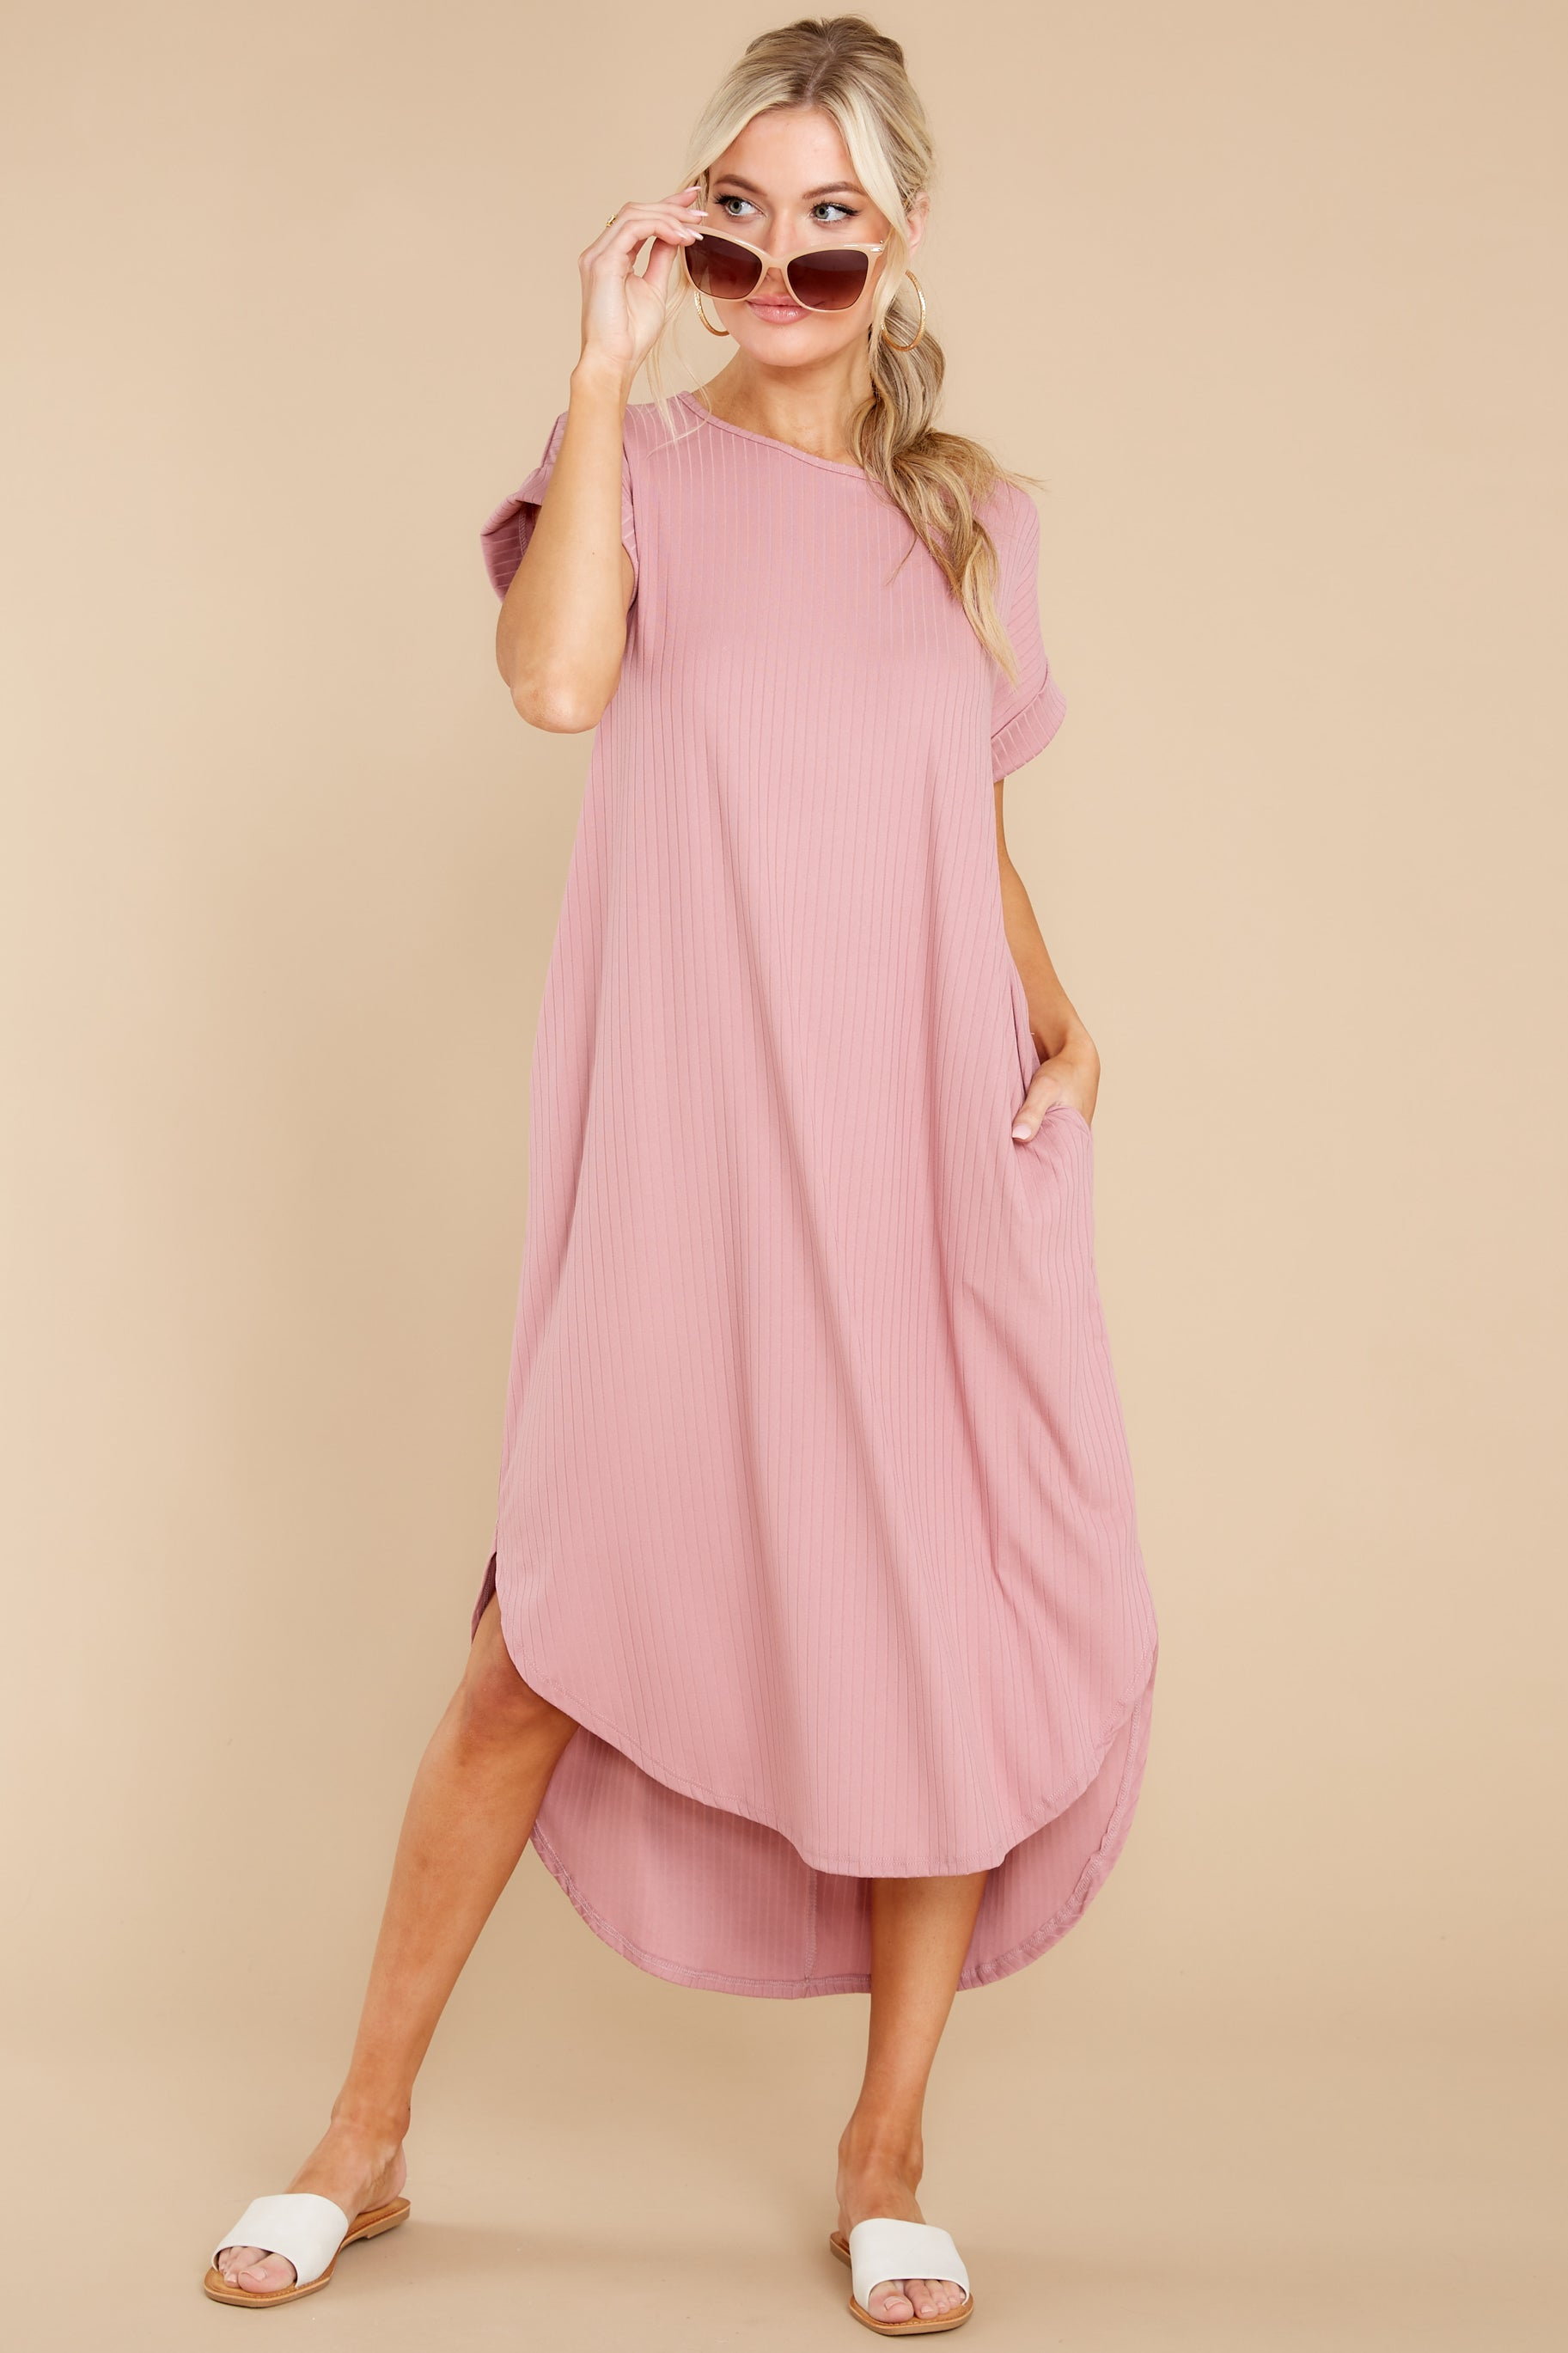 5 Come Away With Me Mauve Blush Midi Dress at reddress.com